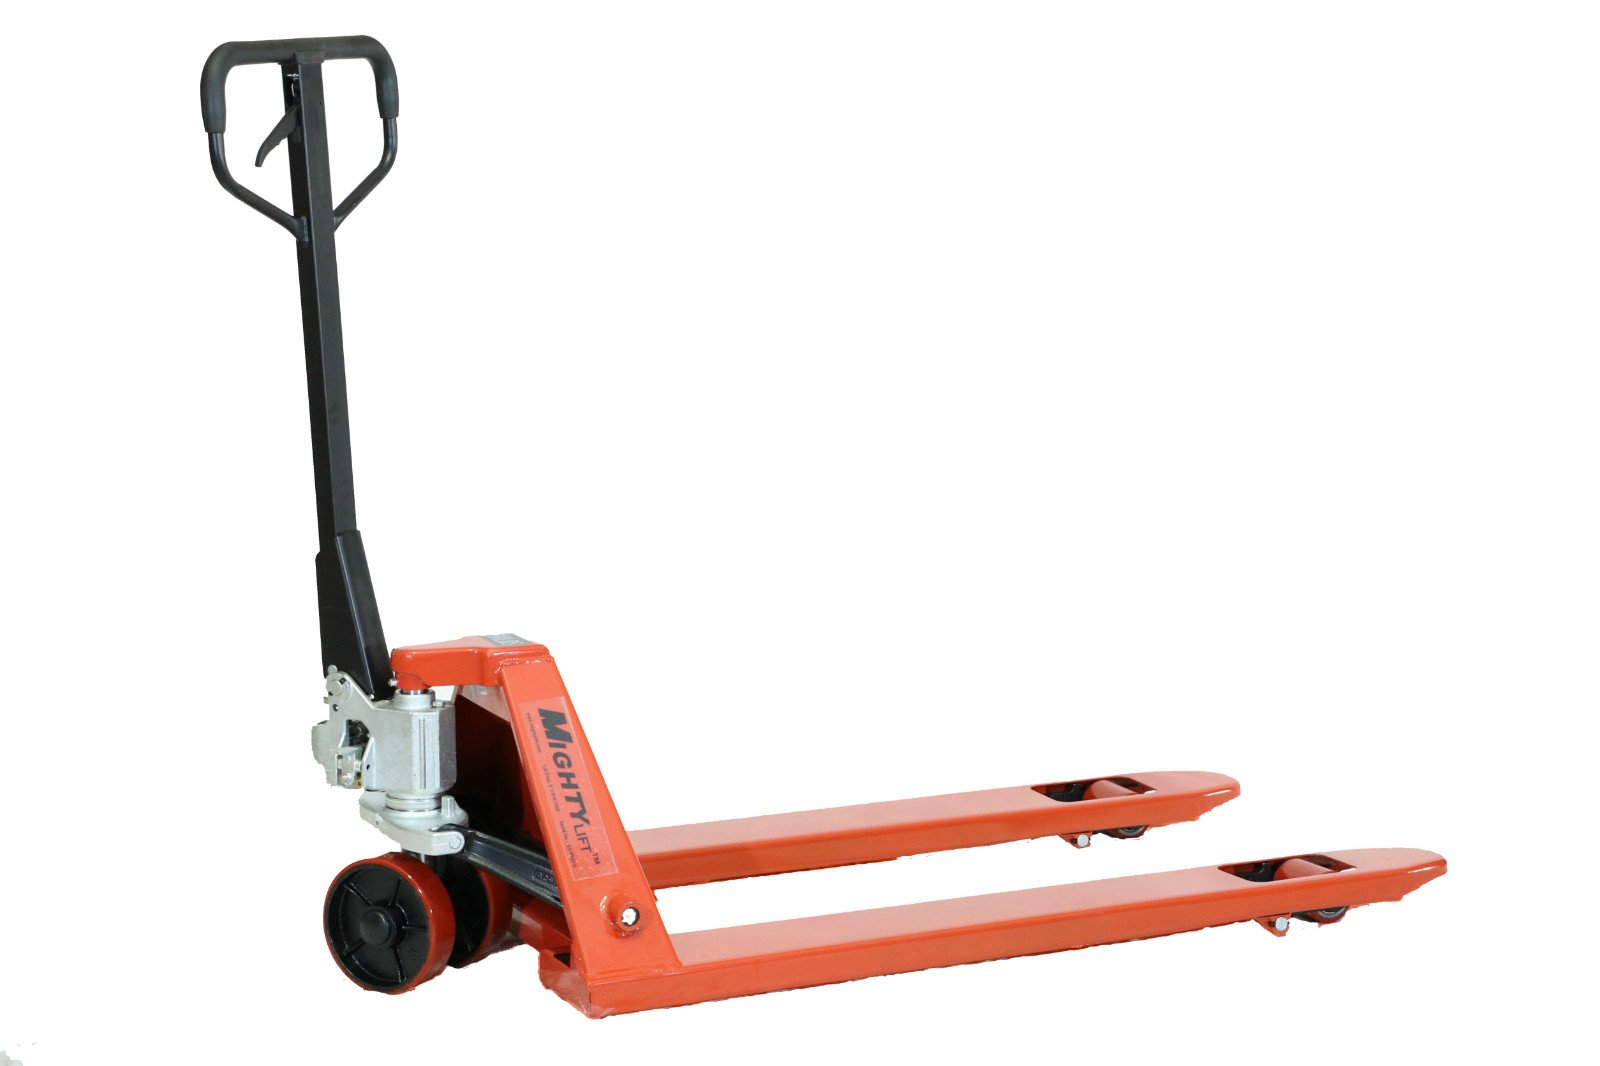 Mighty Lift ML55C Heavy Duty Pallet Jack Truck, Wheels, Polyurethane on Steel, 50'' Height, 27'' Width, 48'' Length, 5500 lb. Load Capacity, Orange